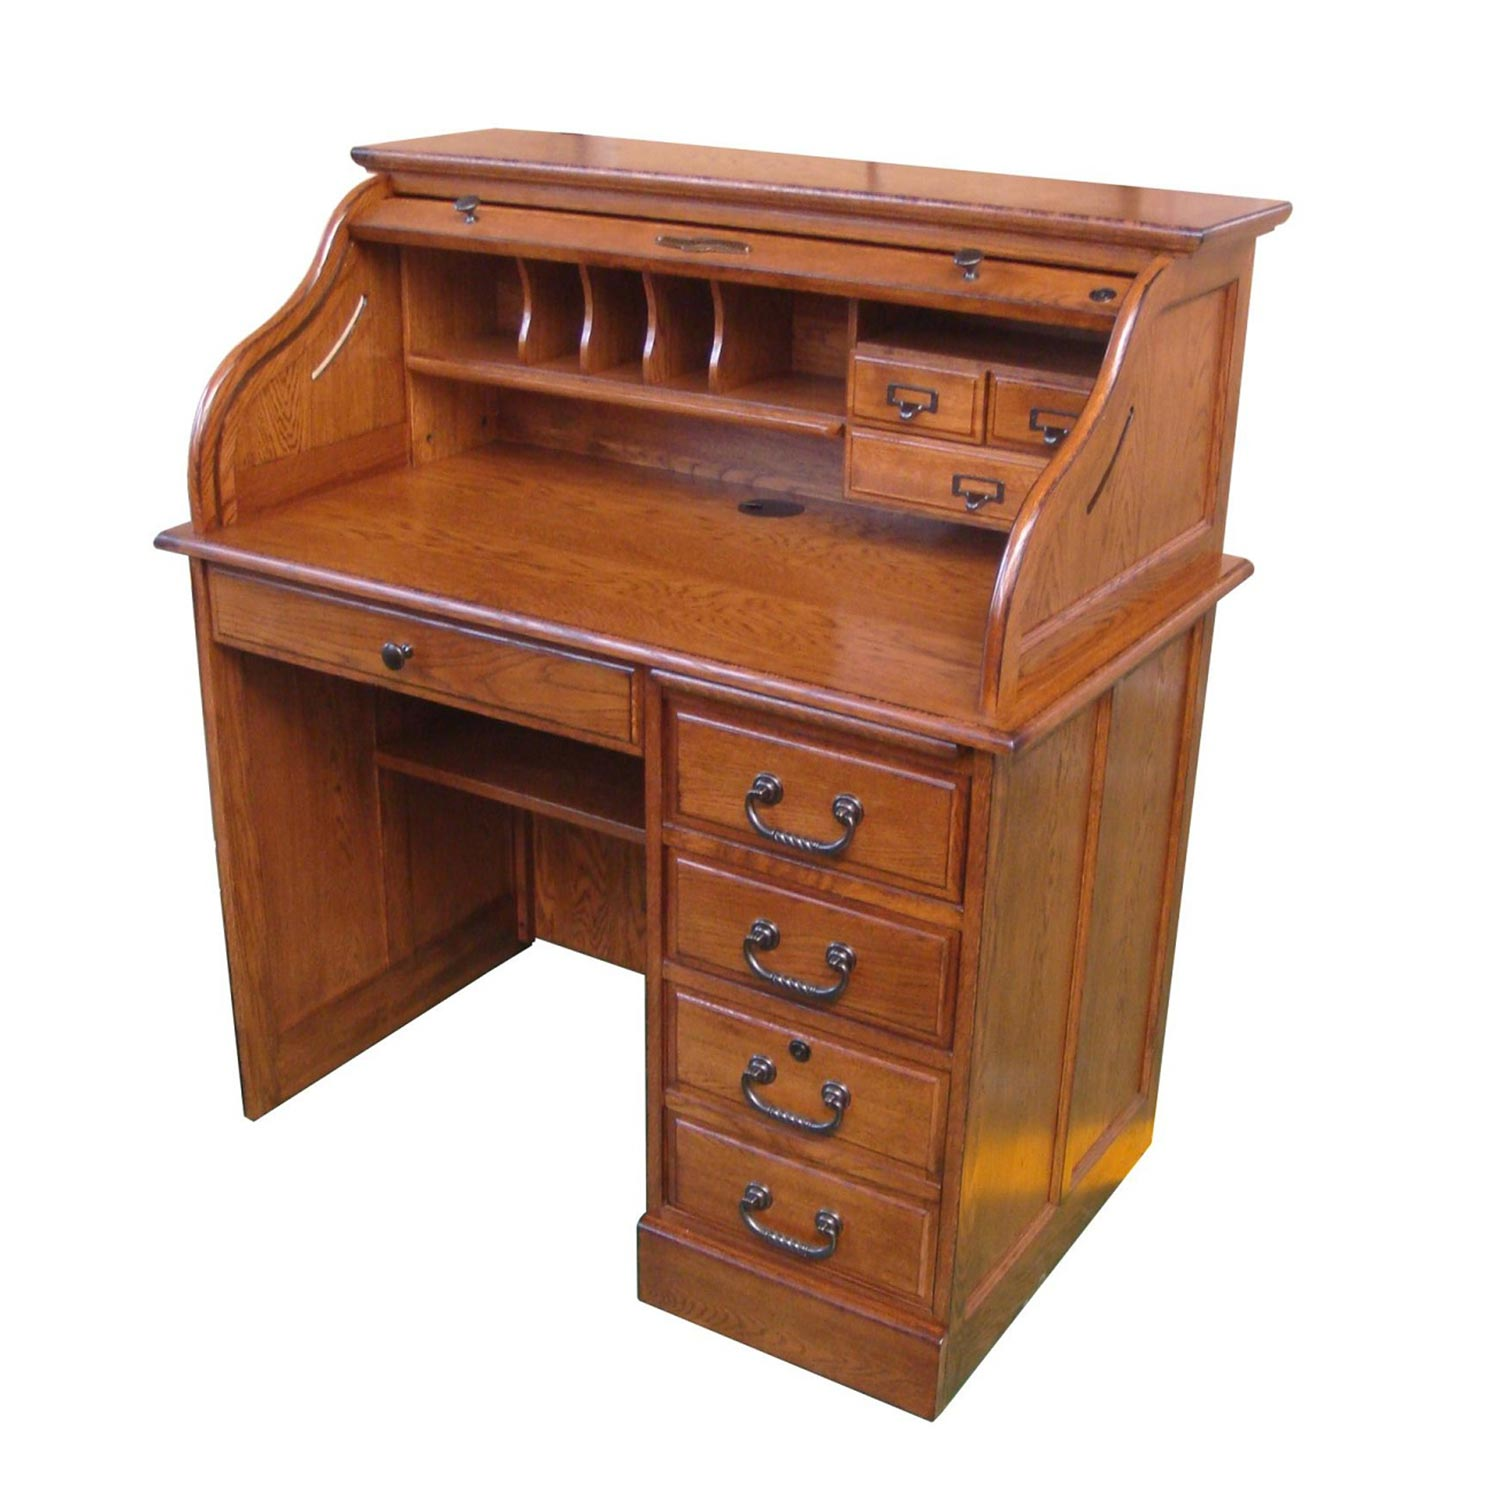 Chelsea Home Moon 42-inchStudent Roll Top Desk - Burnished Walnut